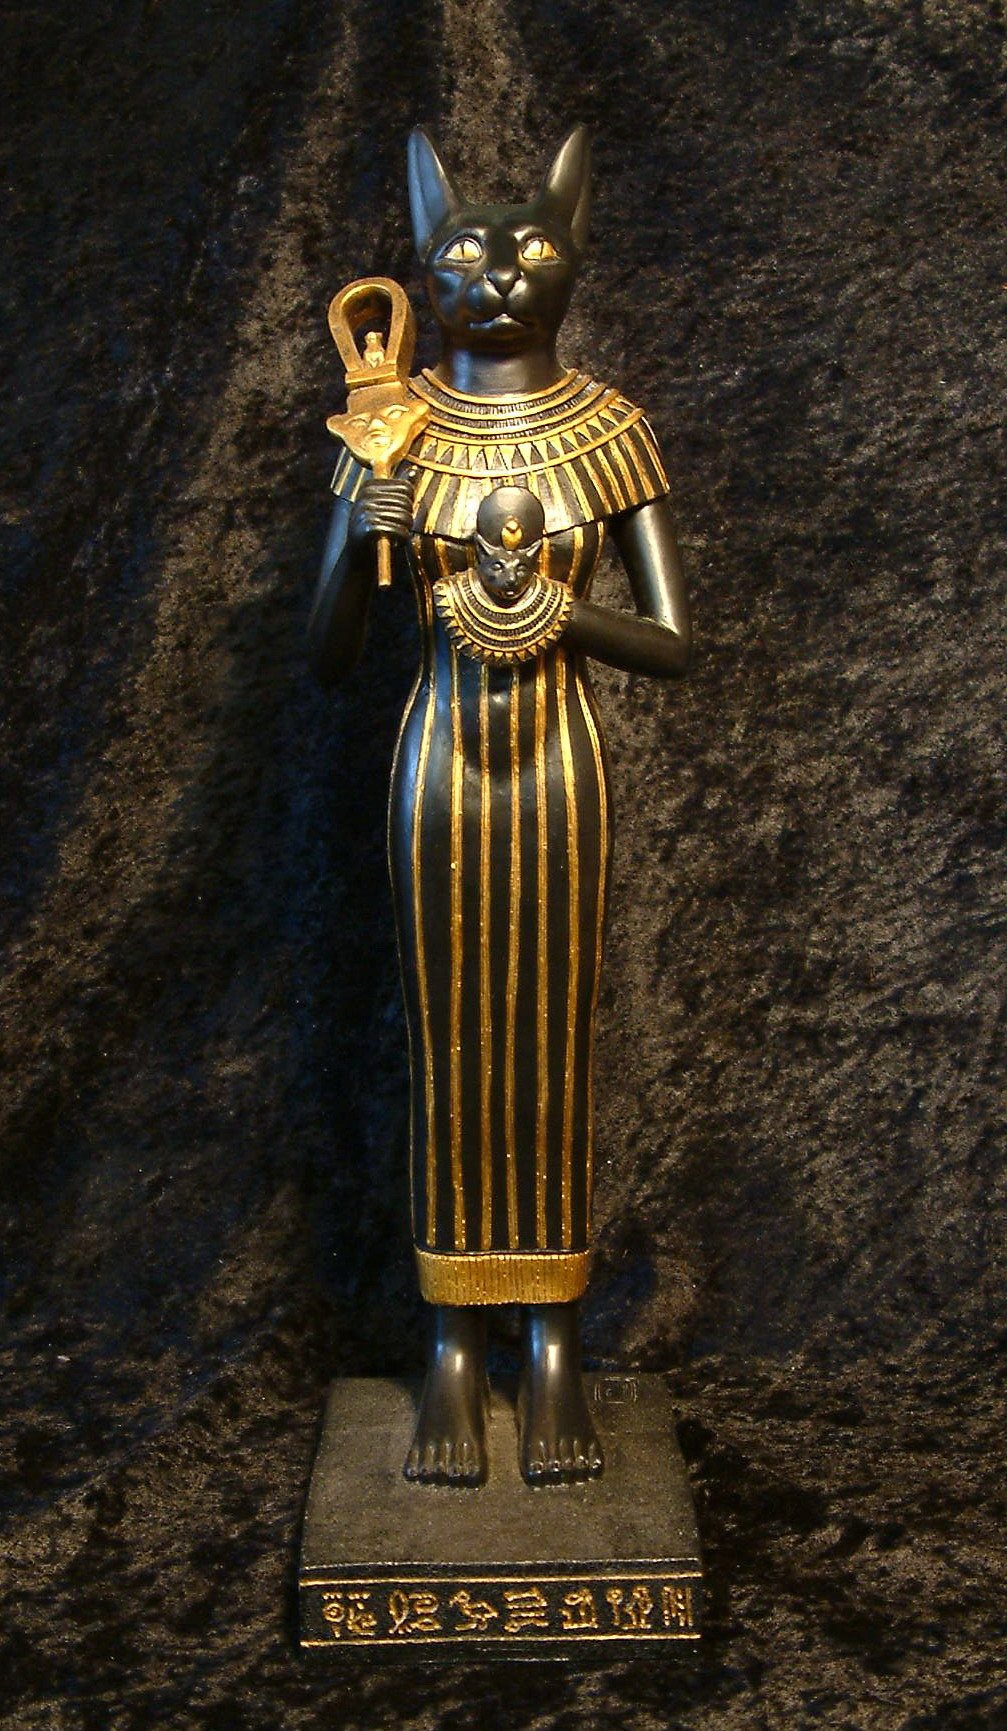 tzimasekhmet09 Top 10 Most Famous Ancient Egyptian Goddesses in the Pharaohs History